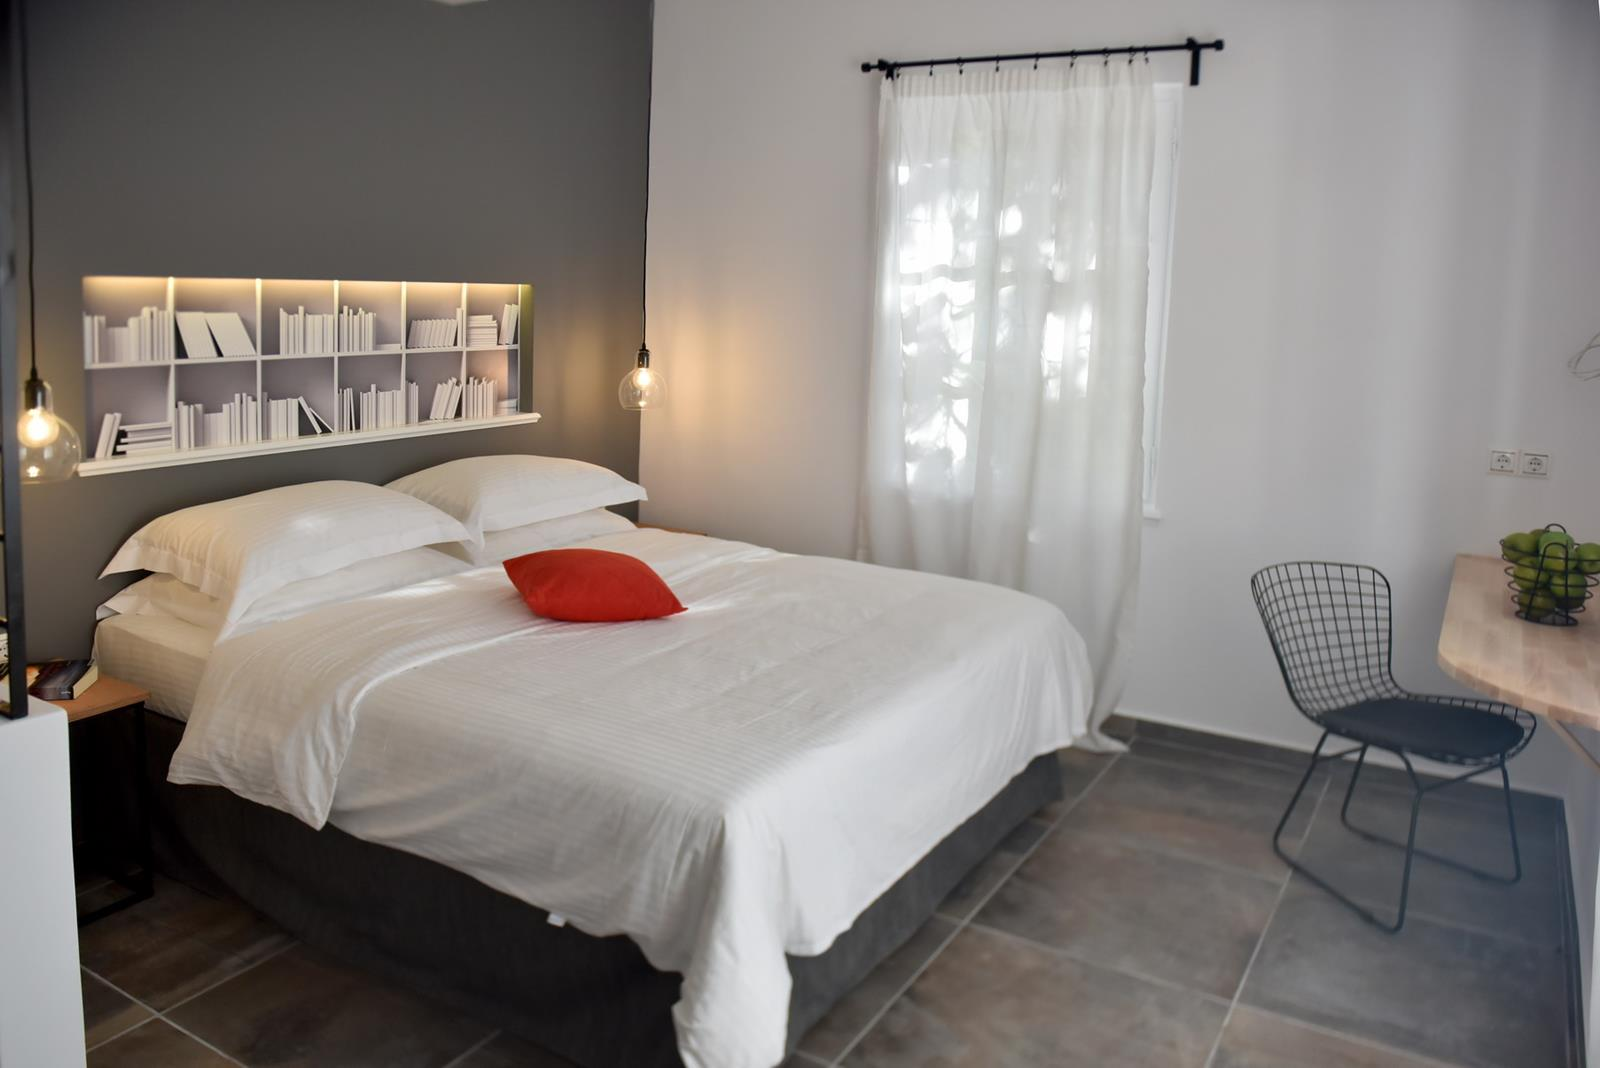 hydra accommodation | Piteoussa Rooms & Co